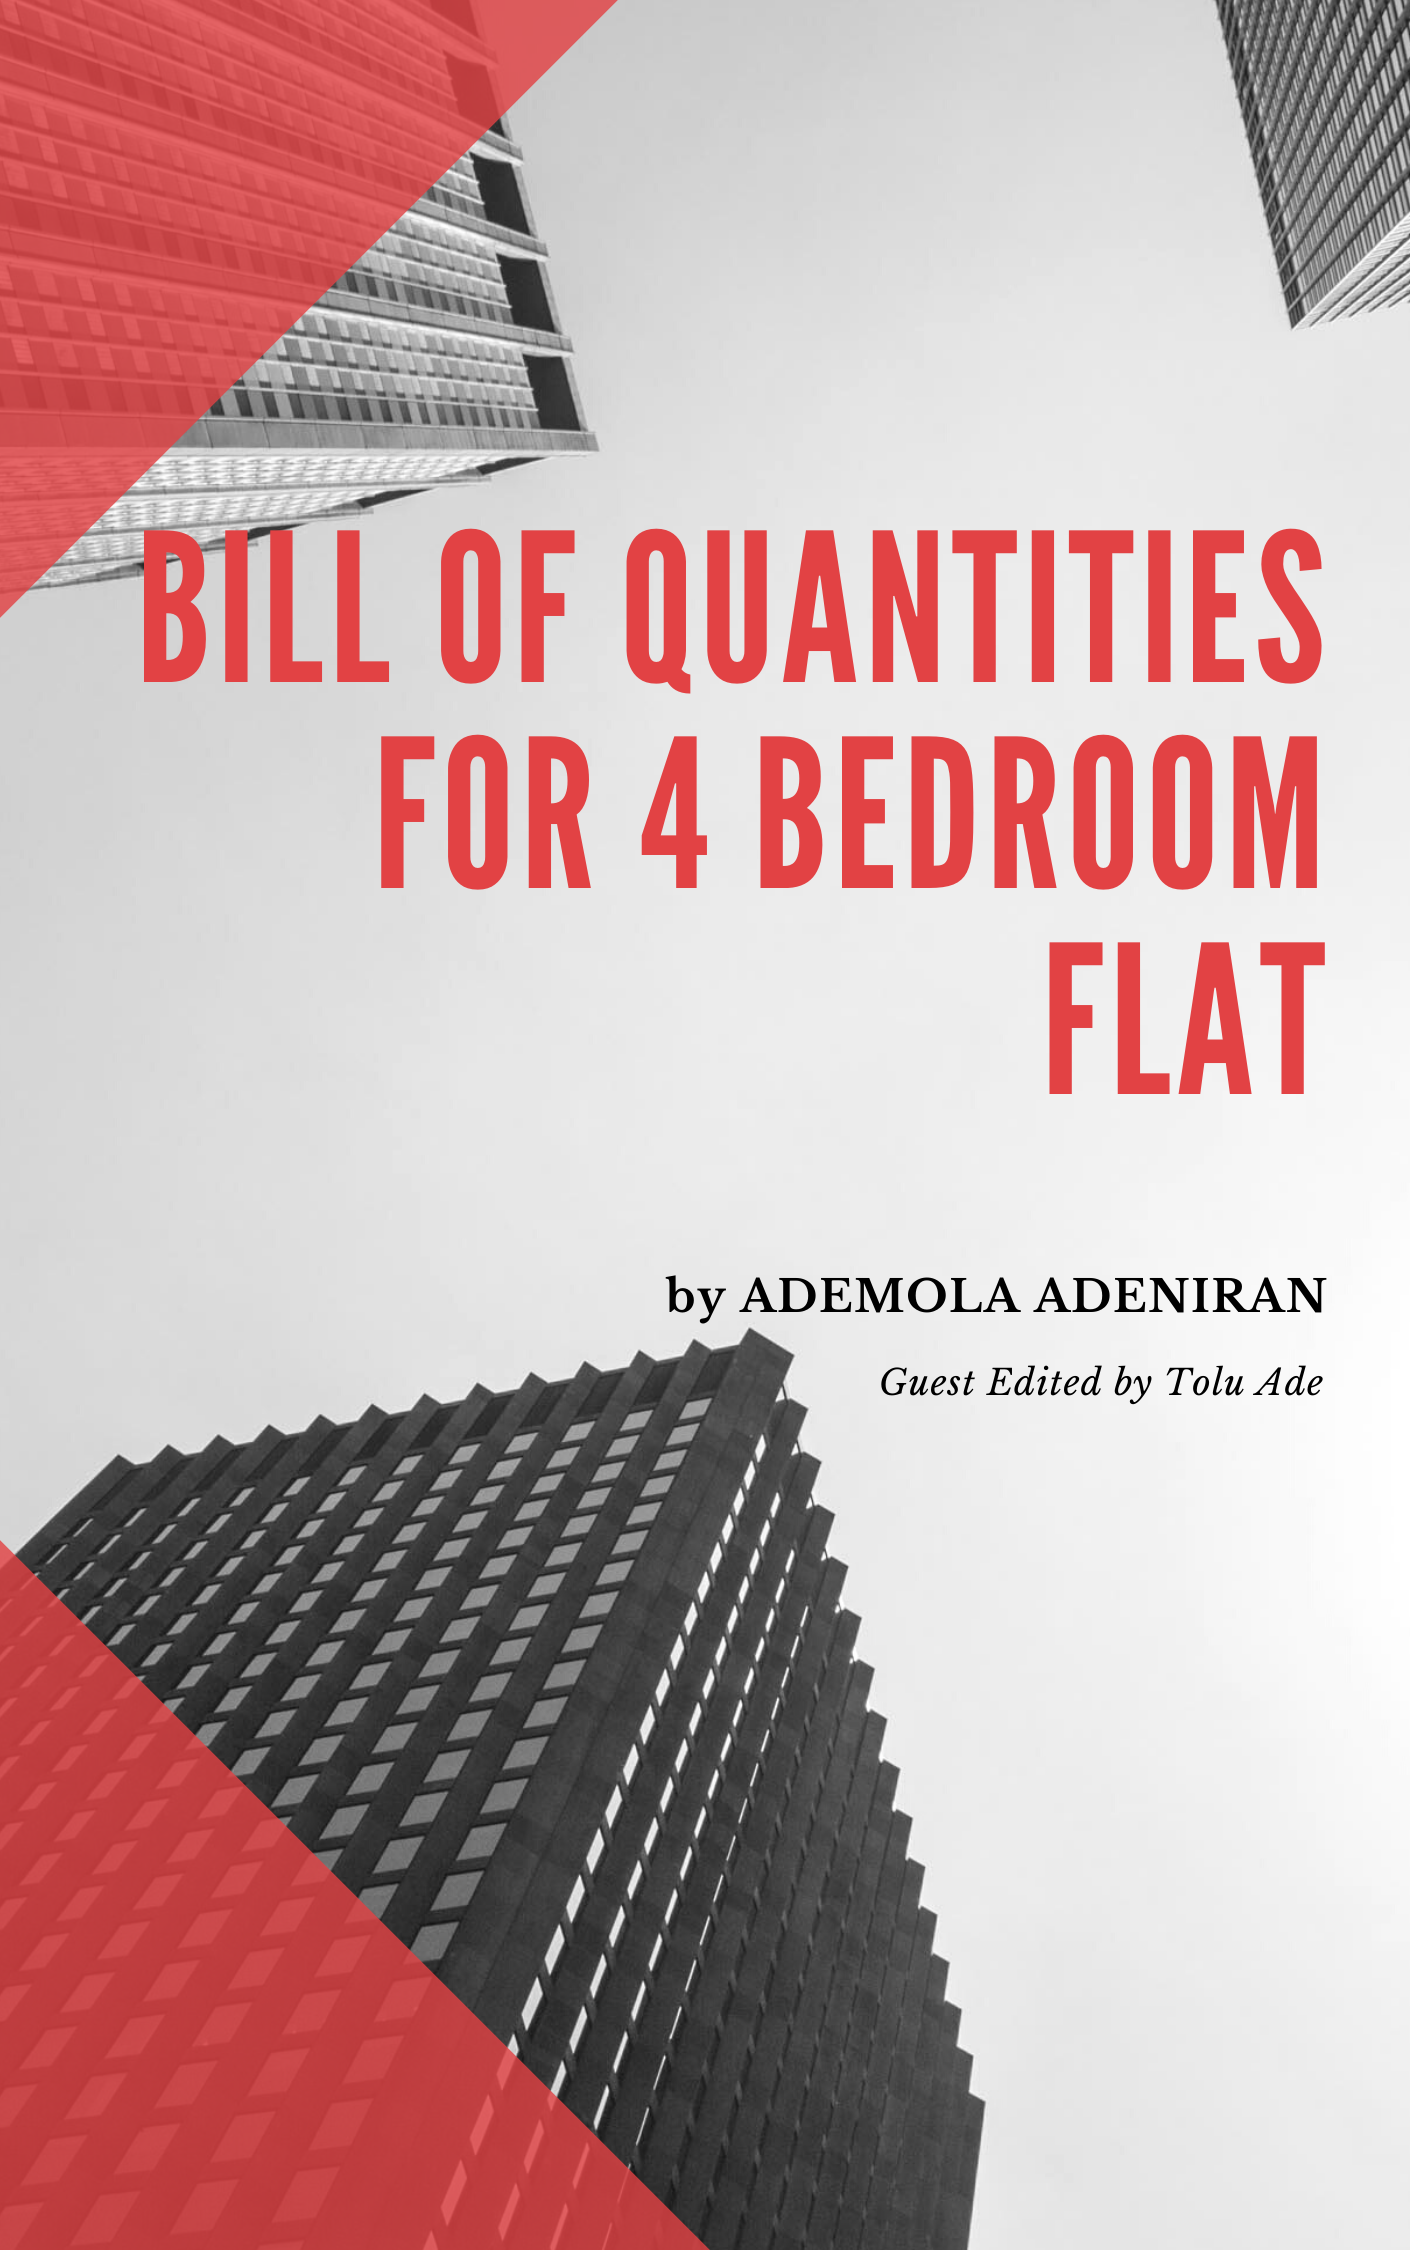 3 1 - 4 Bedroom Flat Bill Of Quantities (BOQ) – Save That Money !!